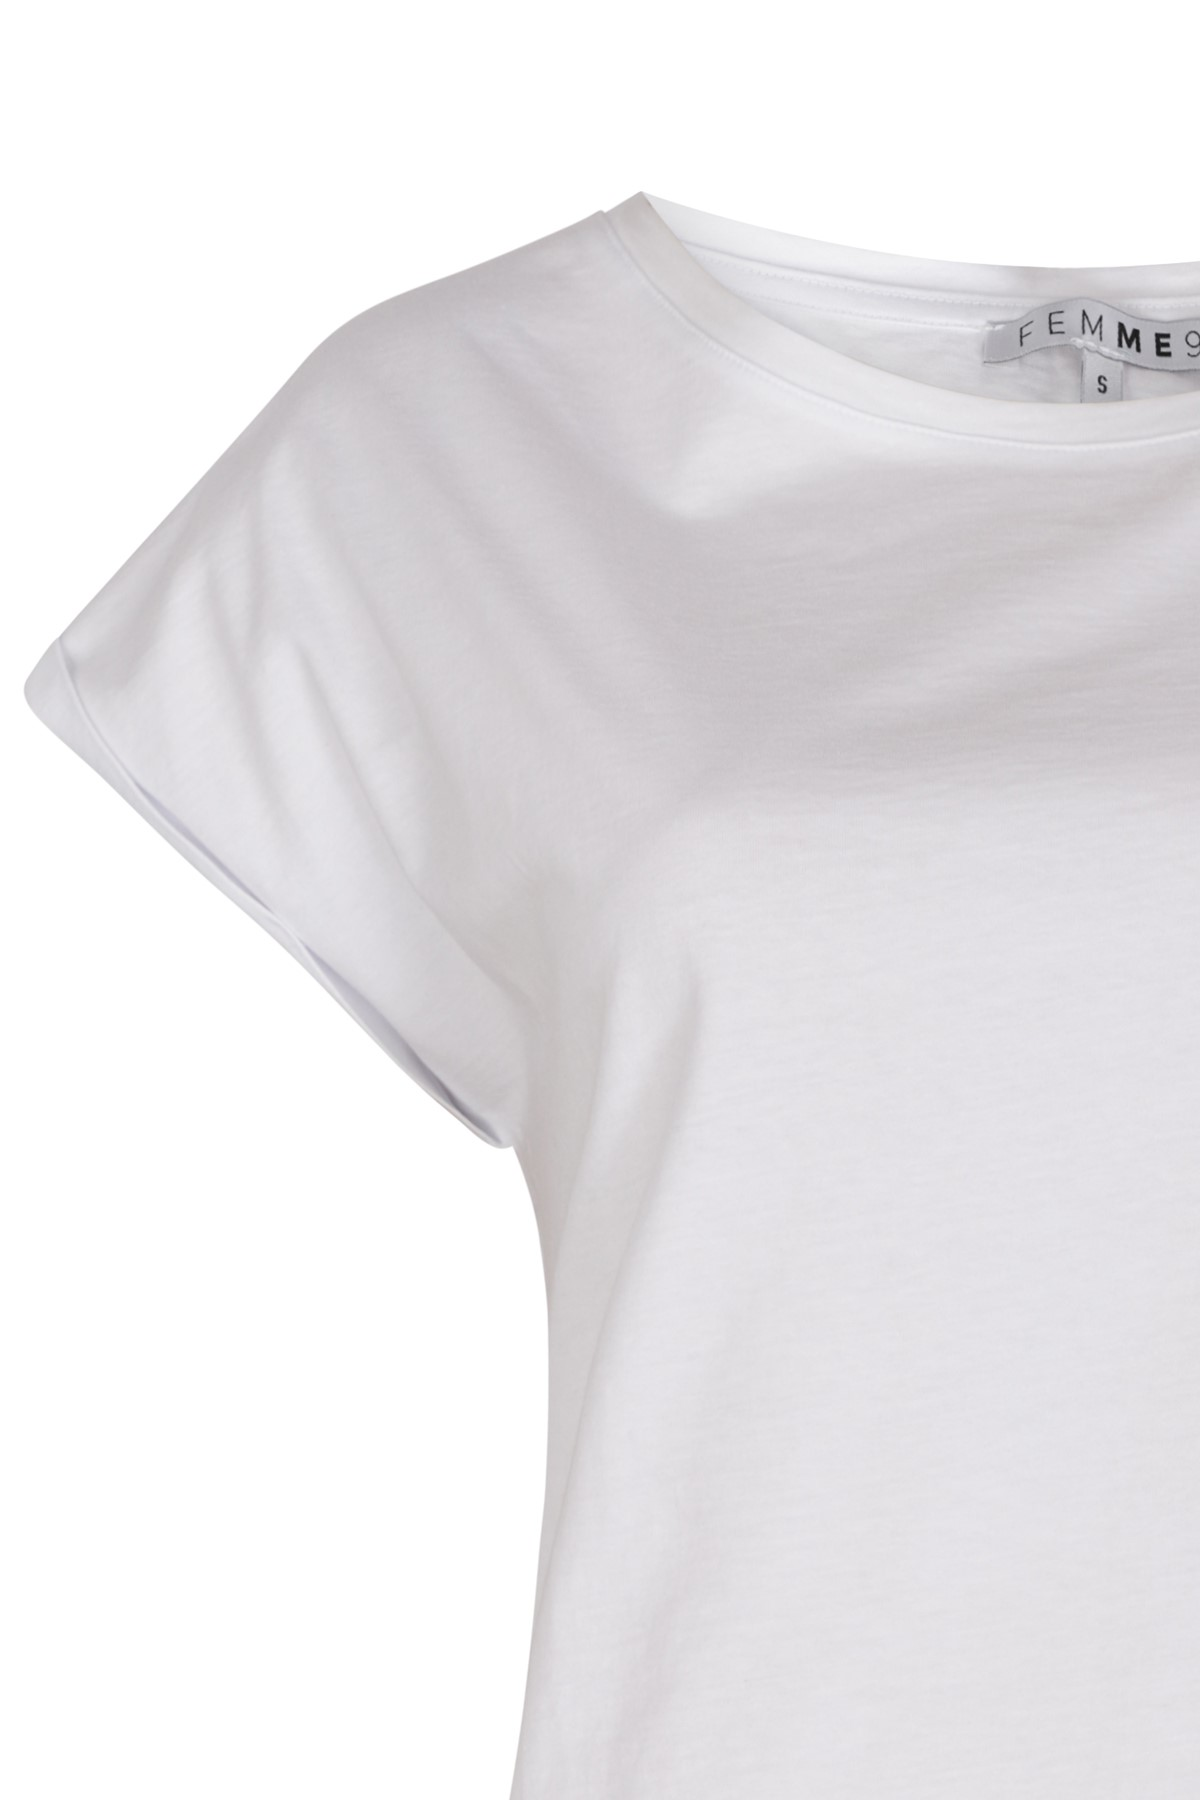 Femme9 Shirt - Top Wit Clairy